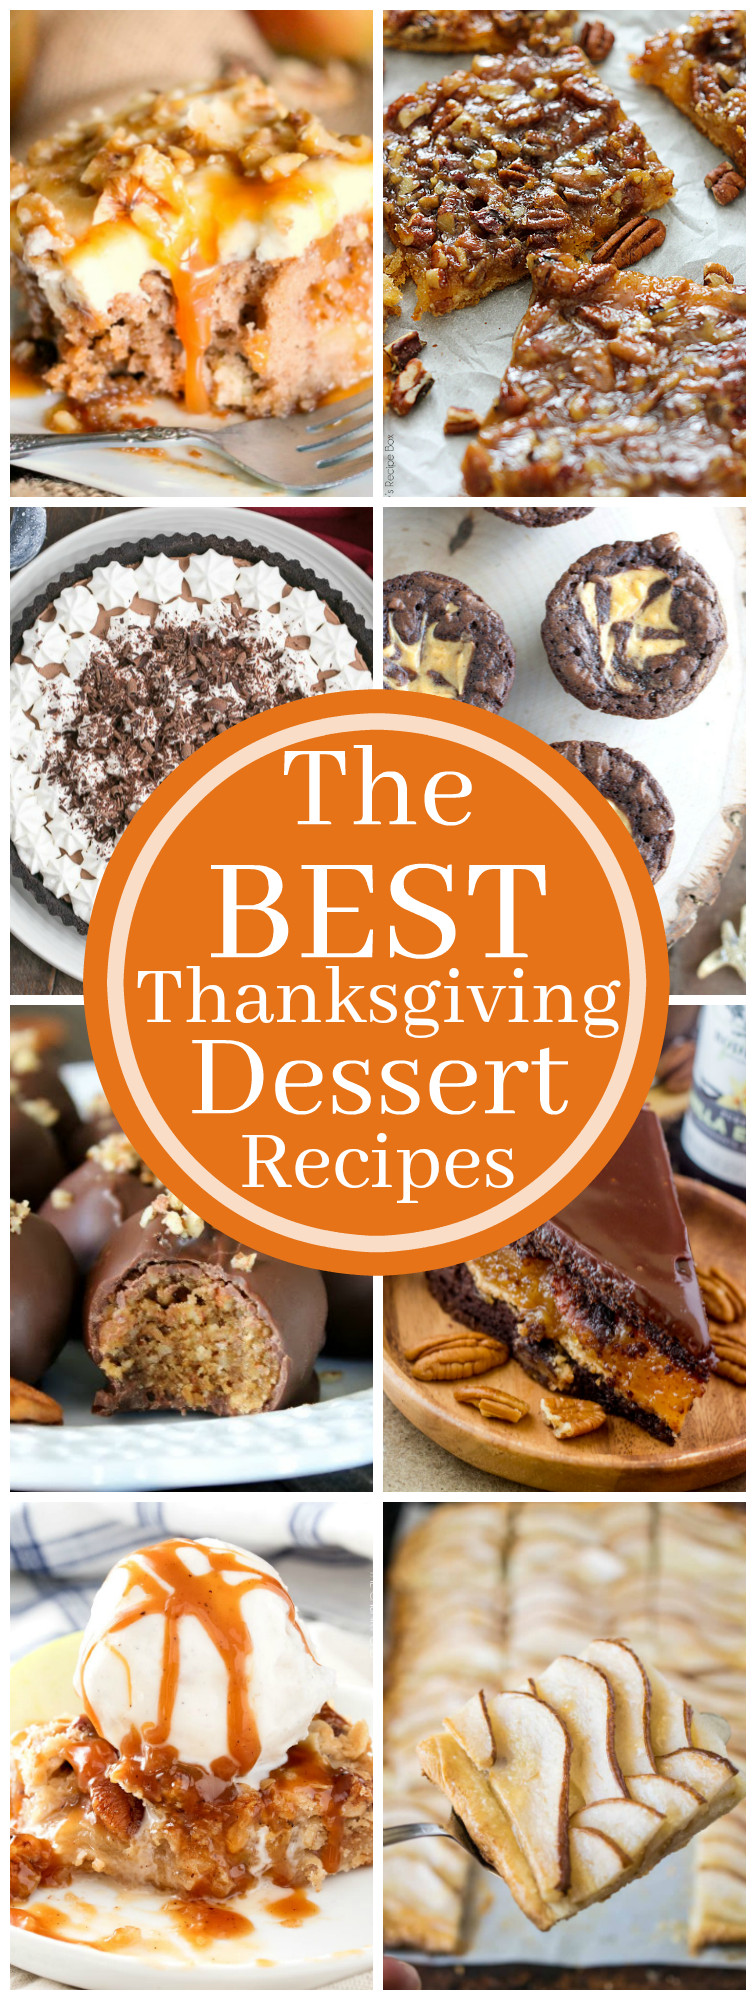 Best Turkey Recipes Thanksgiving  The Best Thanksgiving Dessert Recipes The Chunky Chef